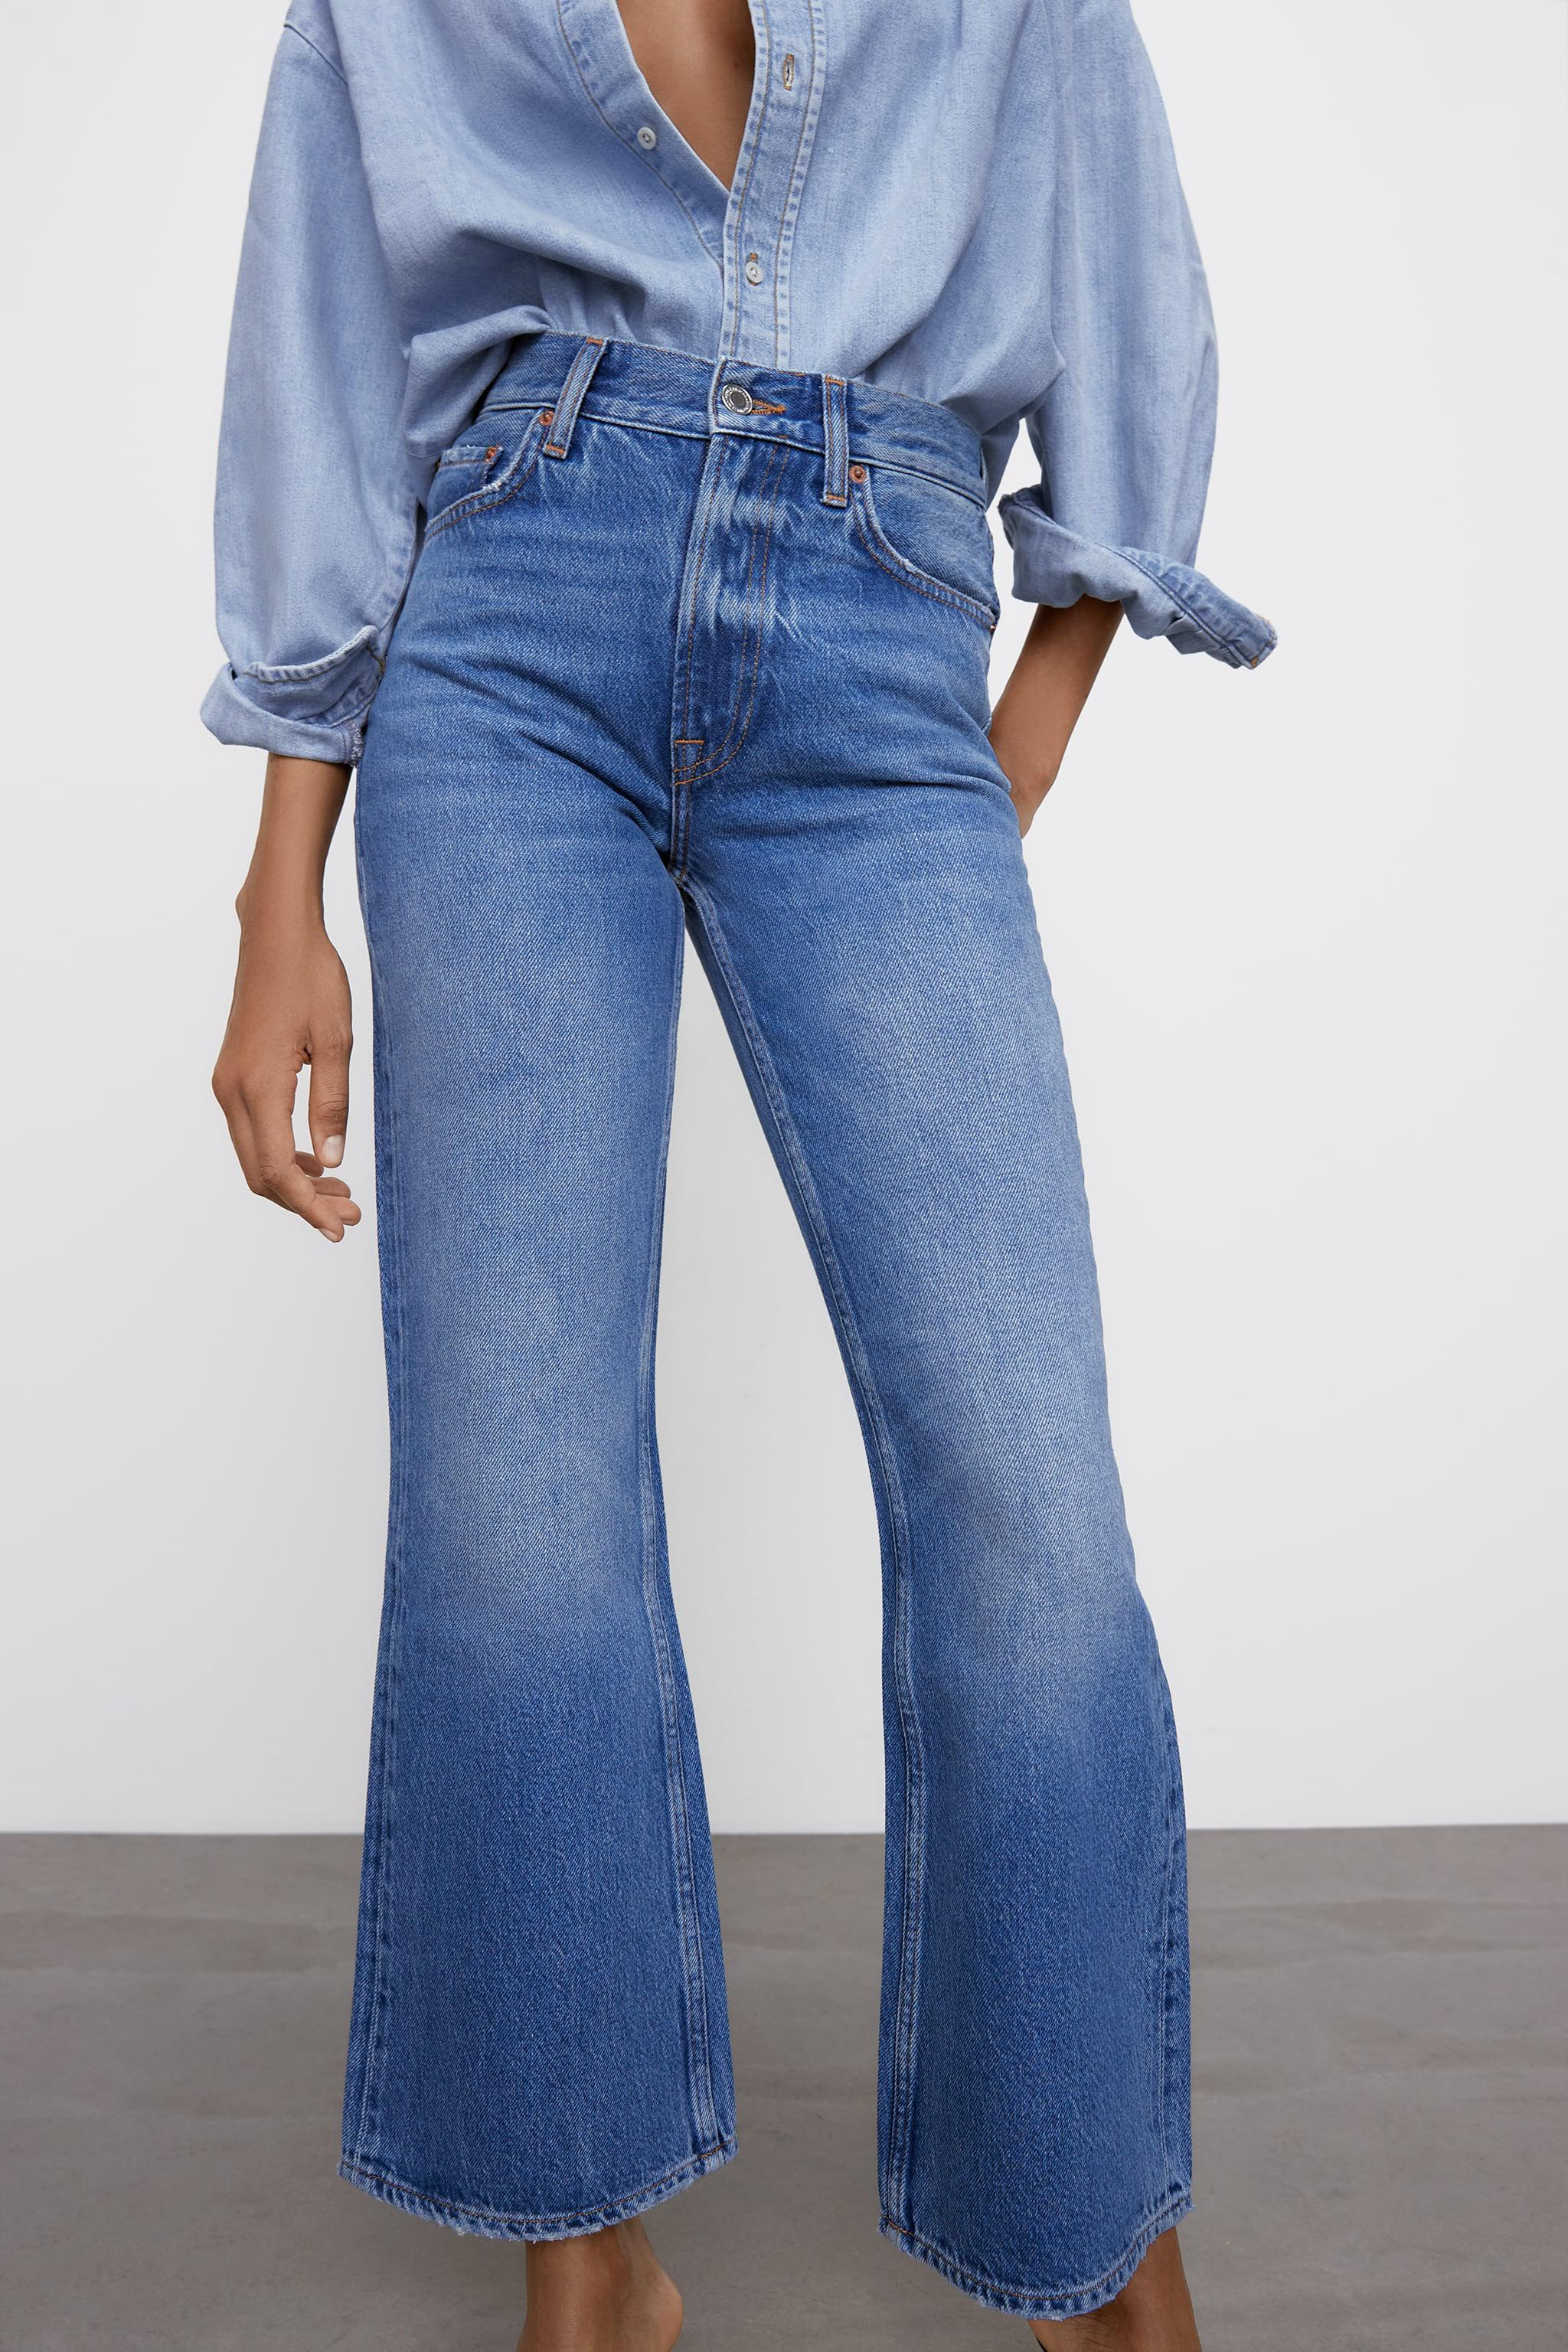 ZW THE ZIA FLARE JEANS 2